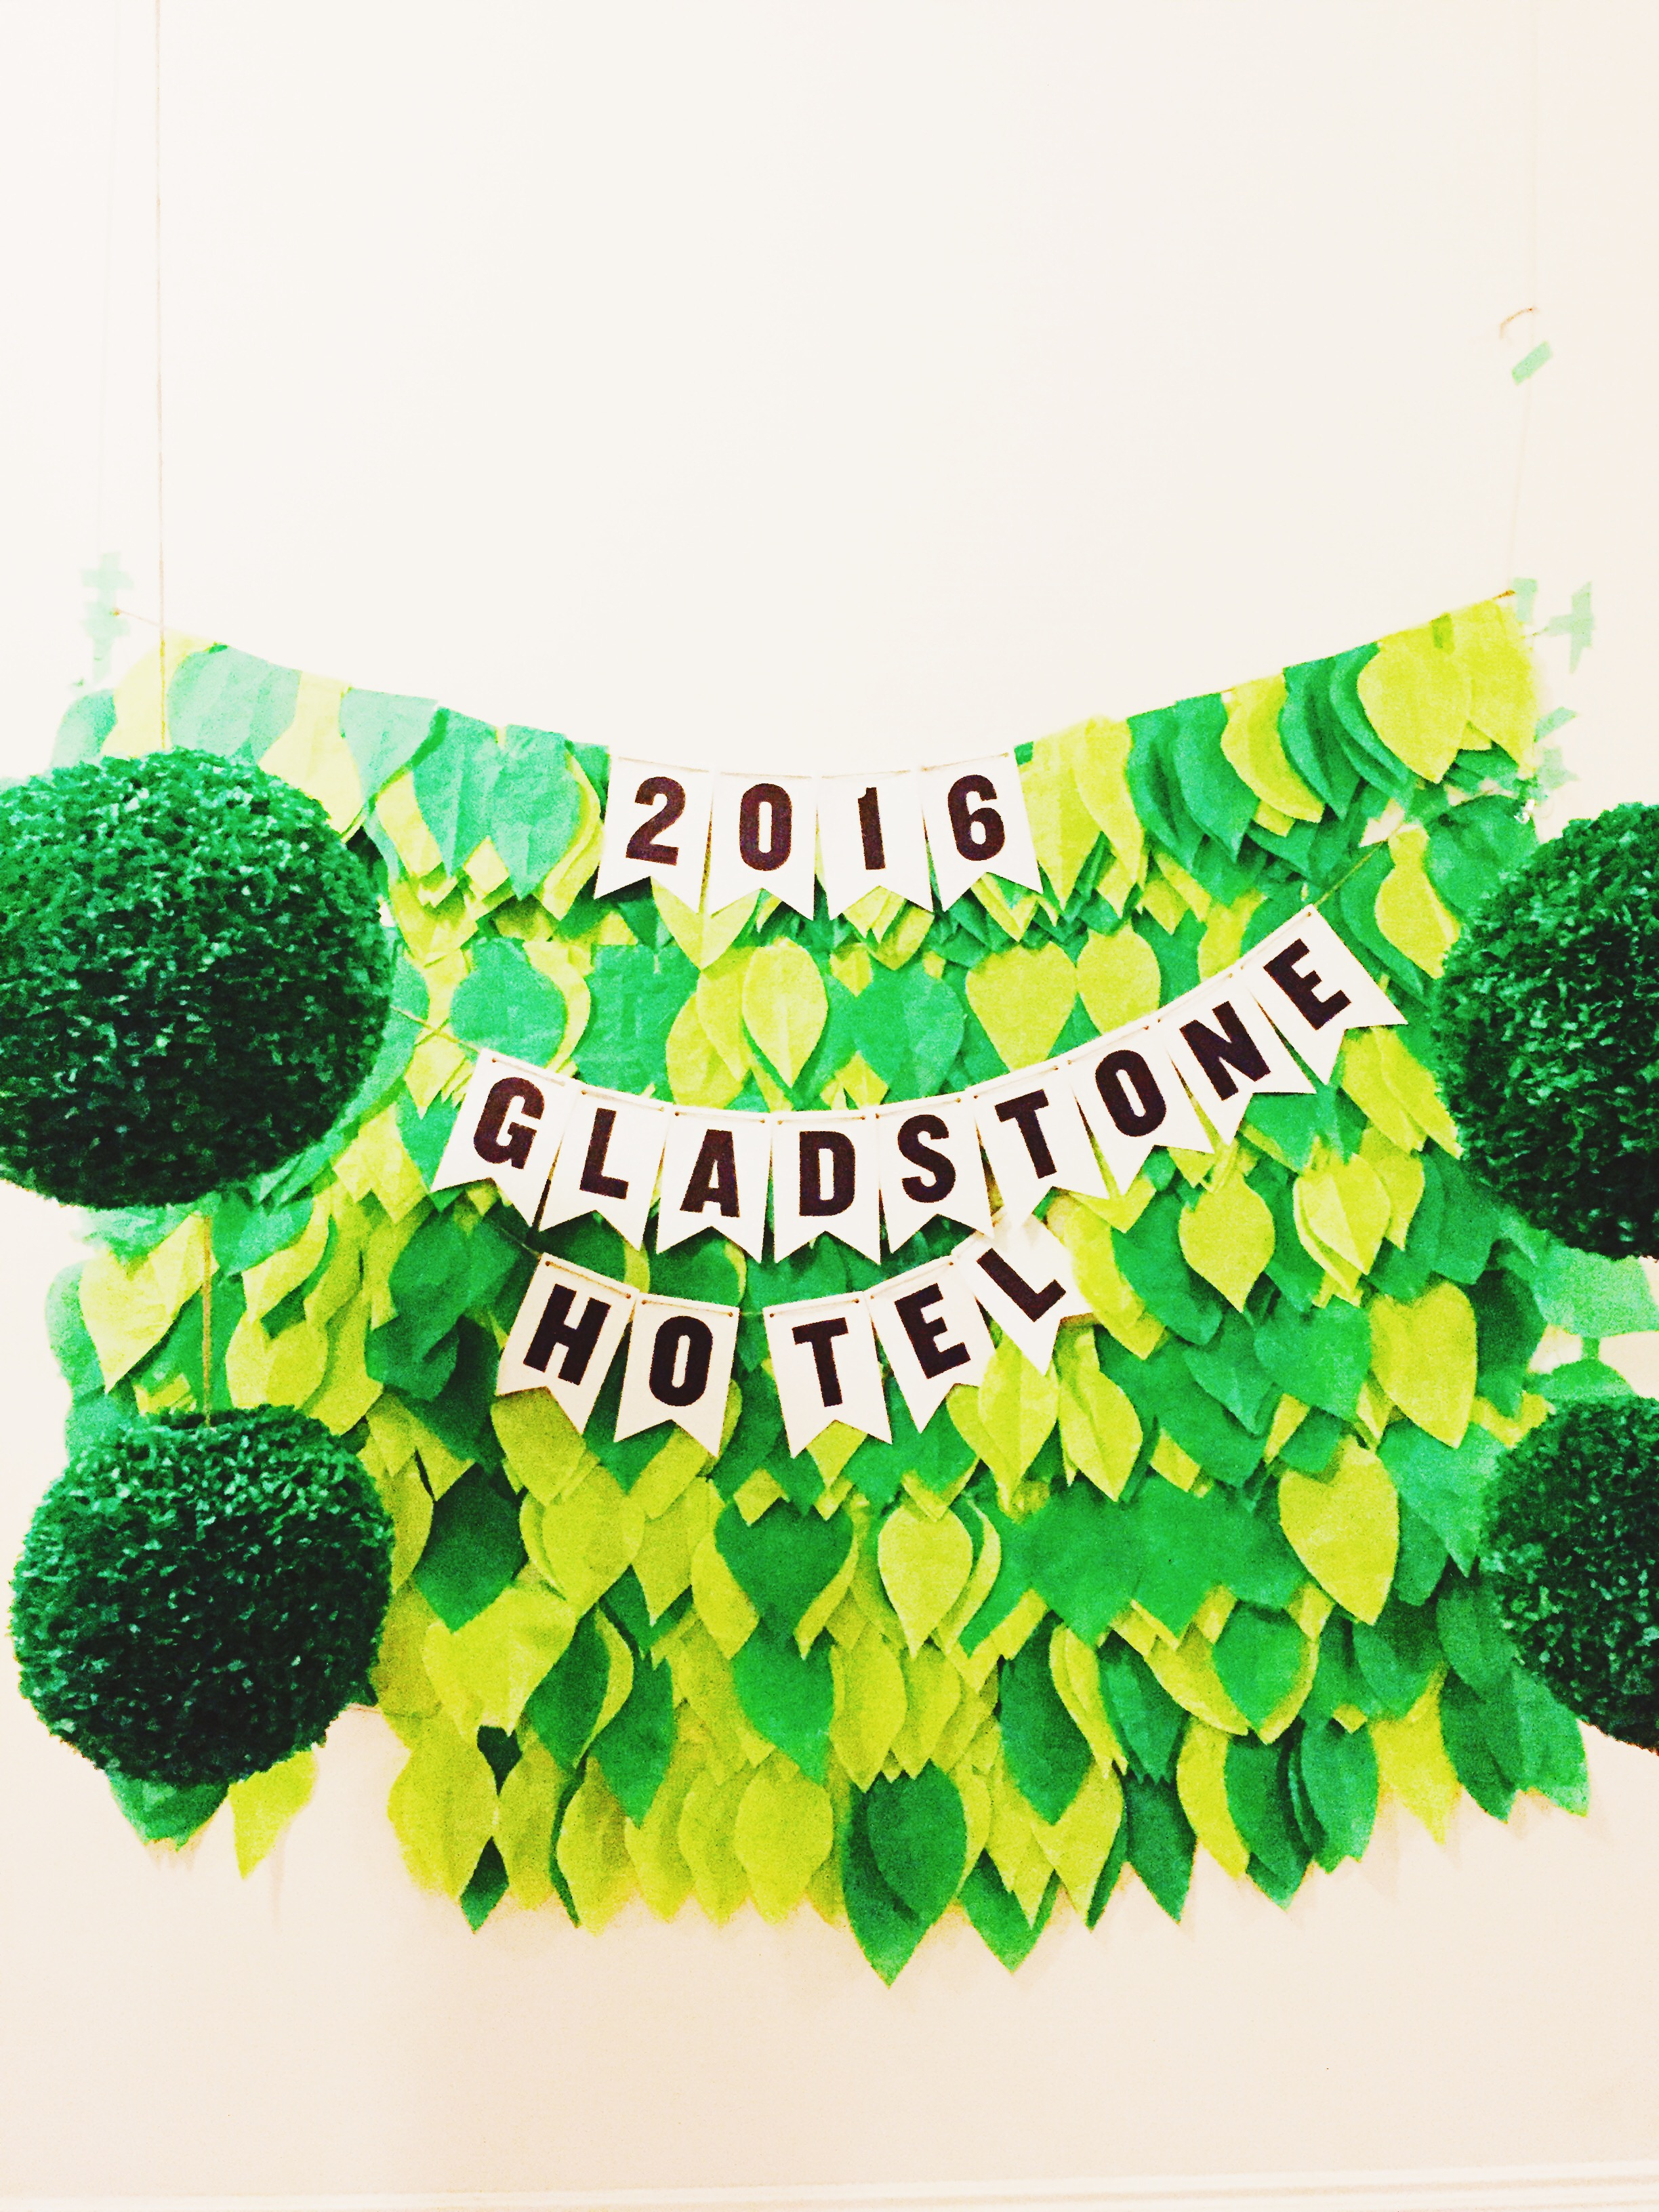 New Year's at the Gladstone.